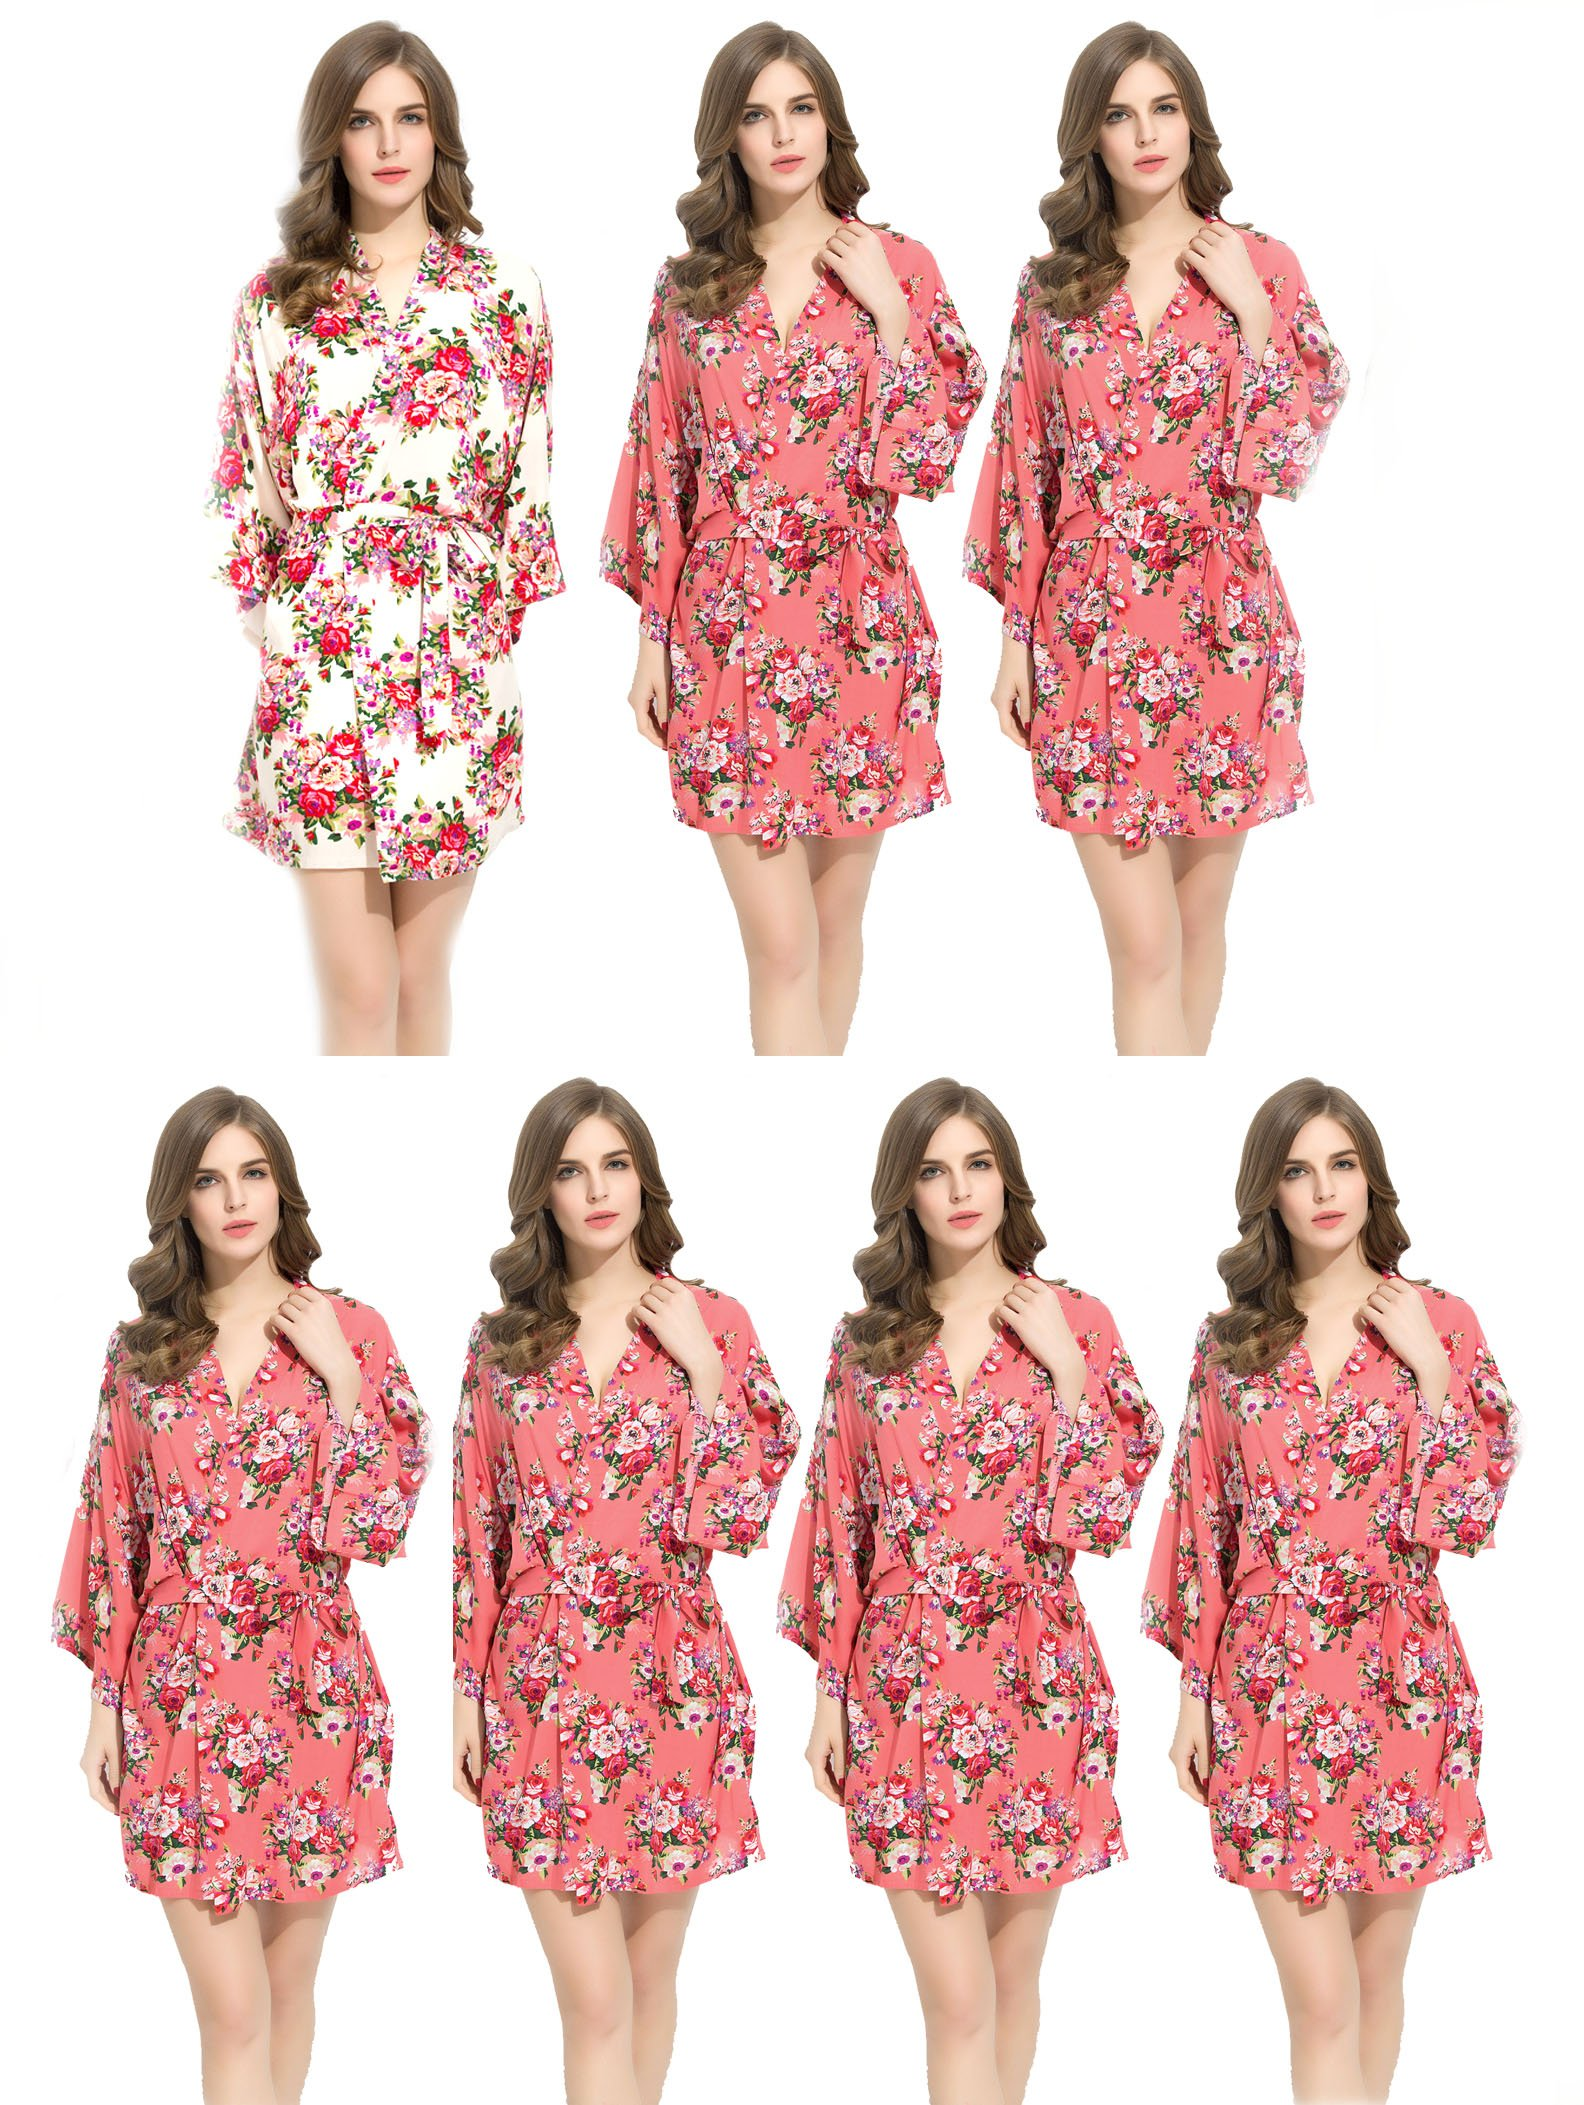 Endless Envy Floral Cotton Bridesmaids Robes 6 Coral & 1 White Wedding Bride